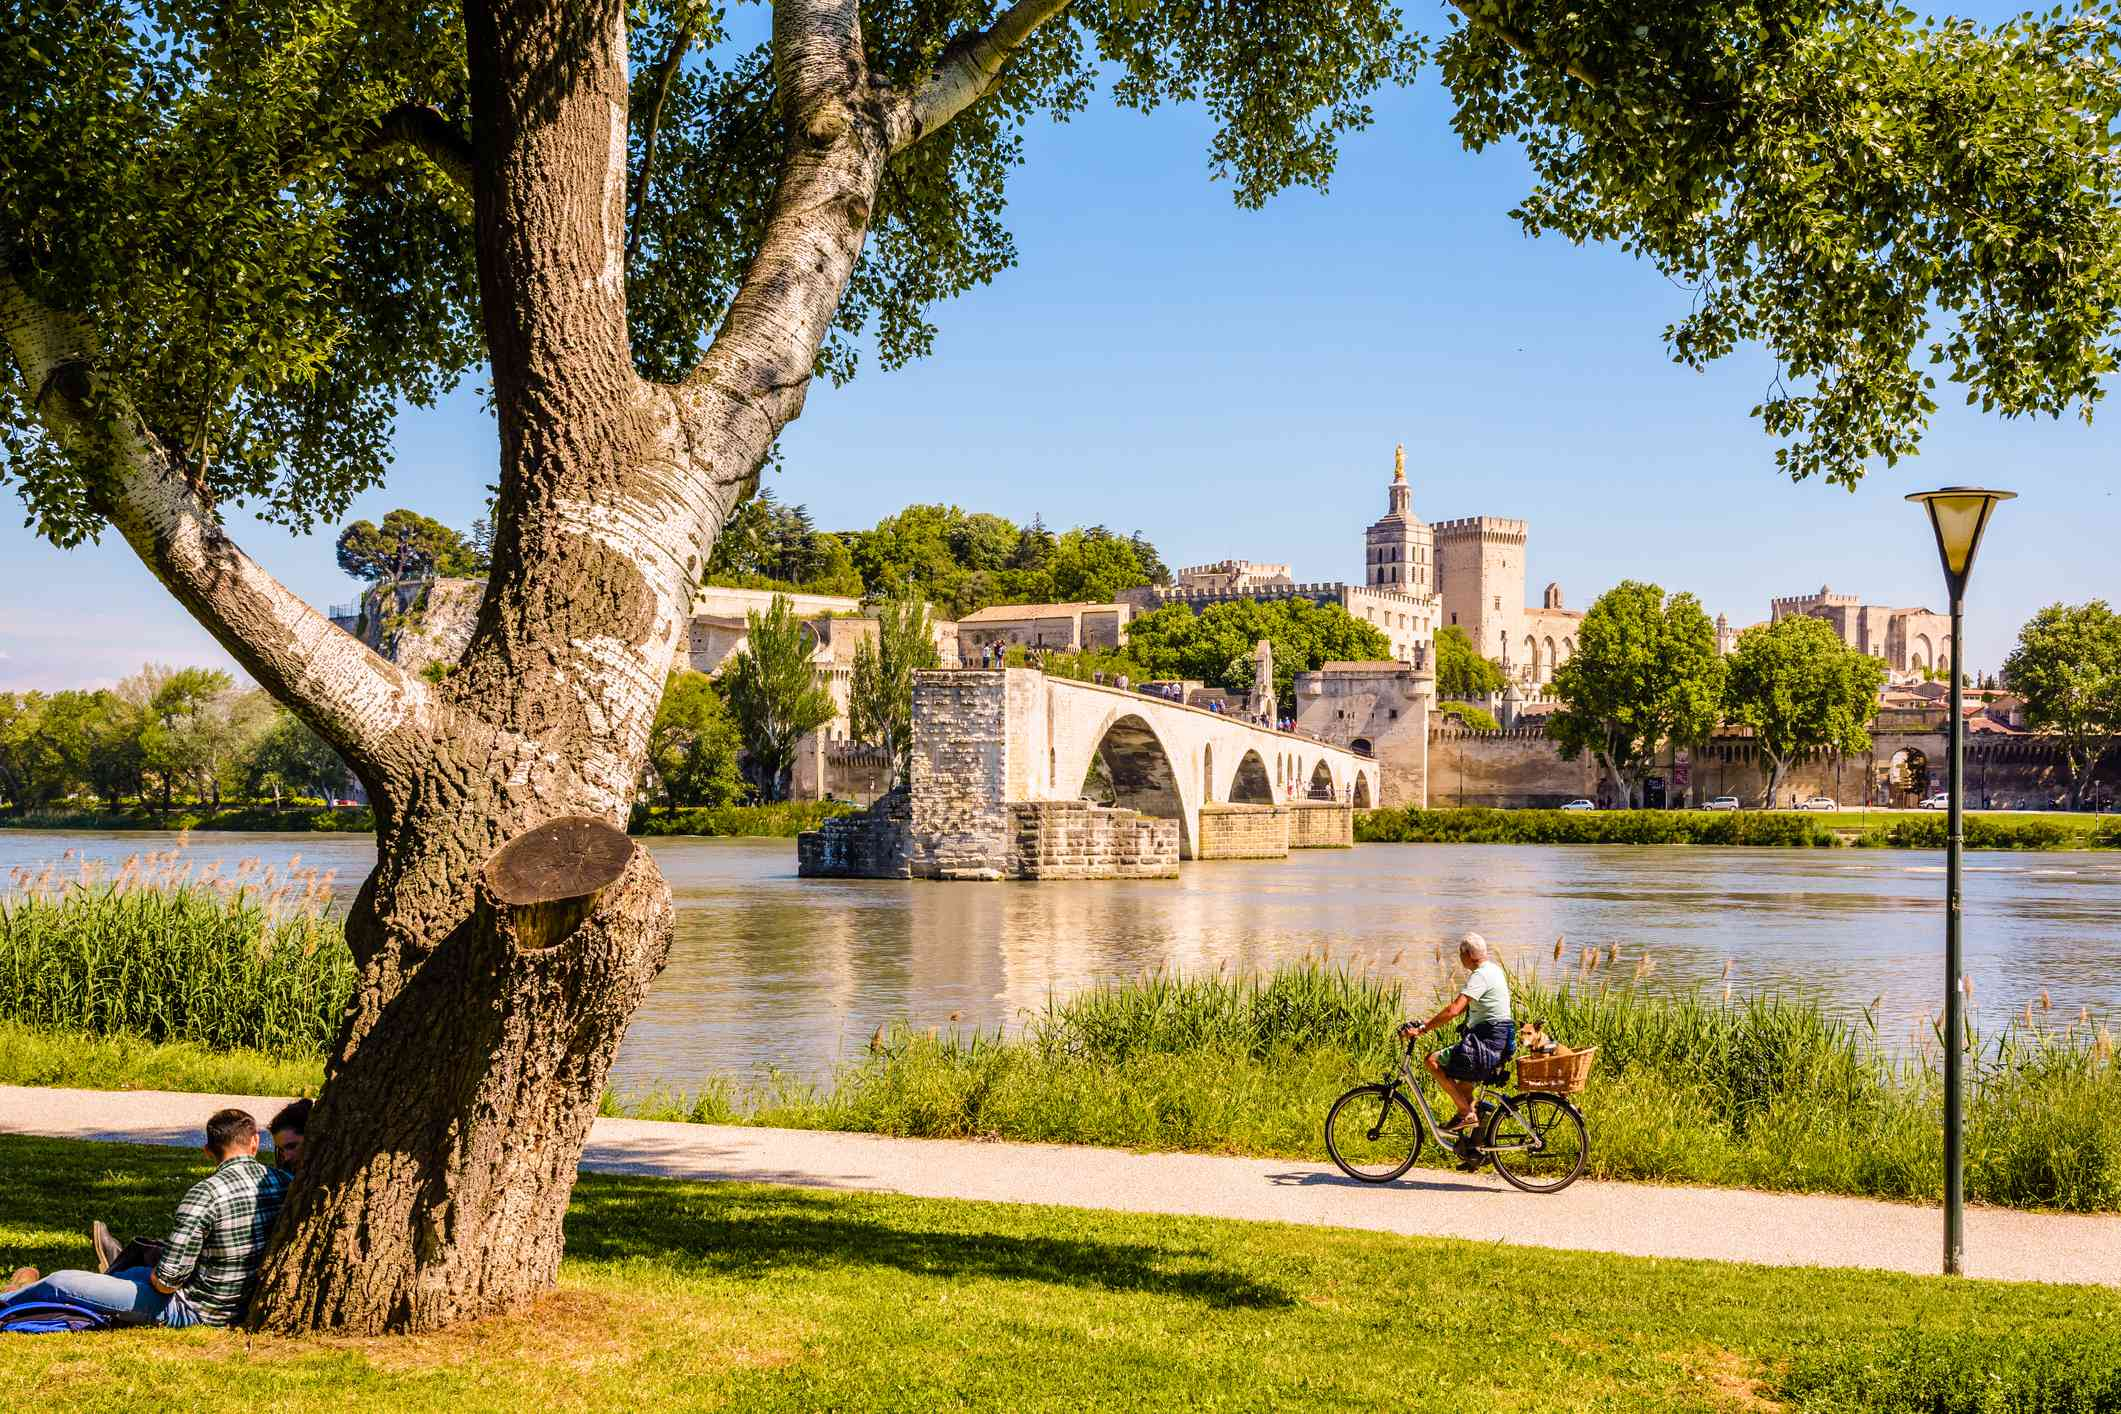 The banks of the Rhone on a sunny day, opposite the Avignon bridge and the Papal palace in Avignon, France.